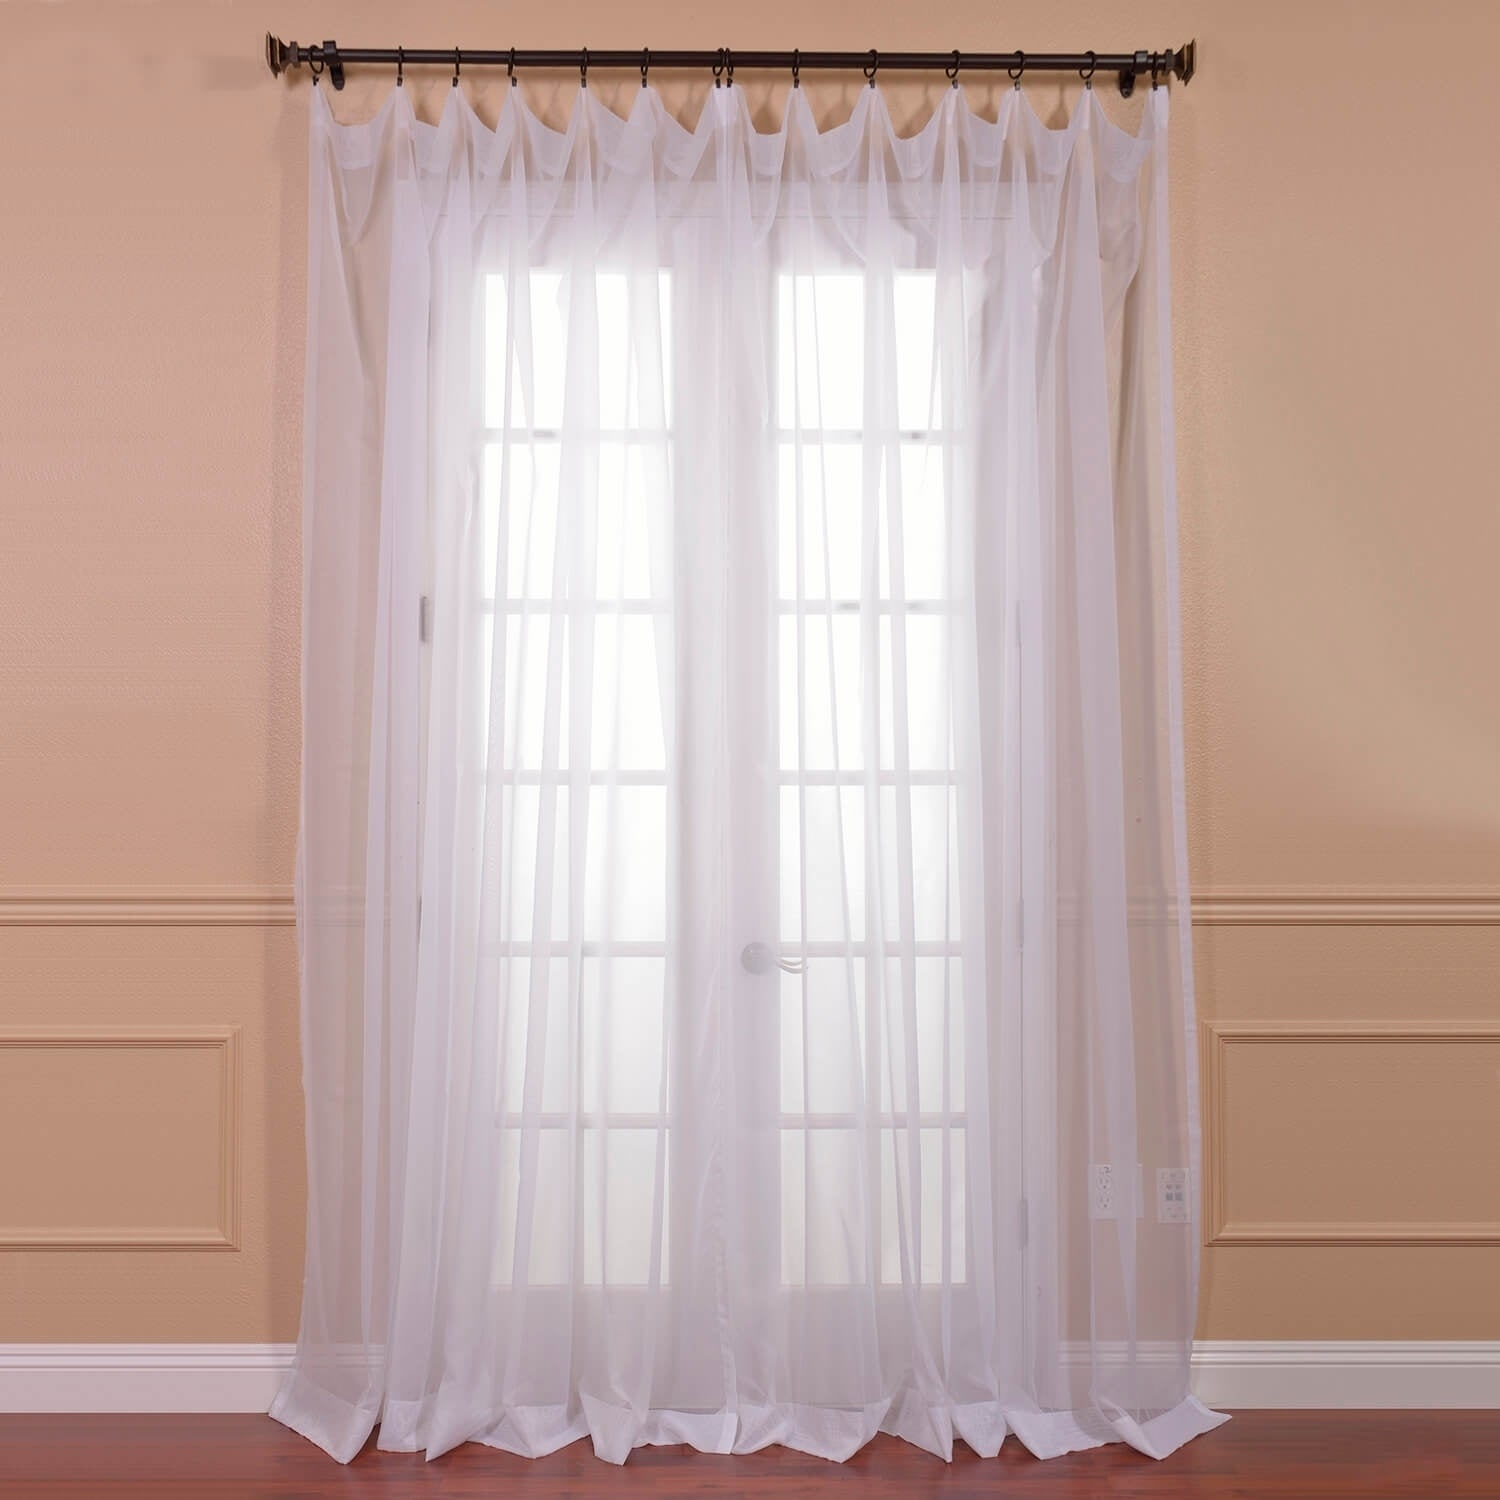 treatments top more category blackout hei curtain wid styles qlt rod curtains decor home panel grommet sizes window pocket drapes darcy store bed